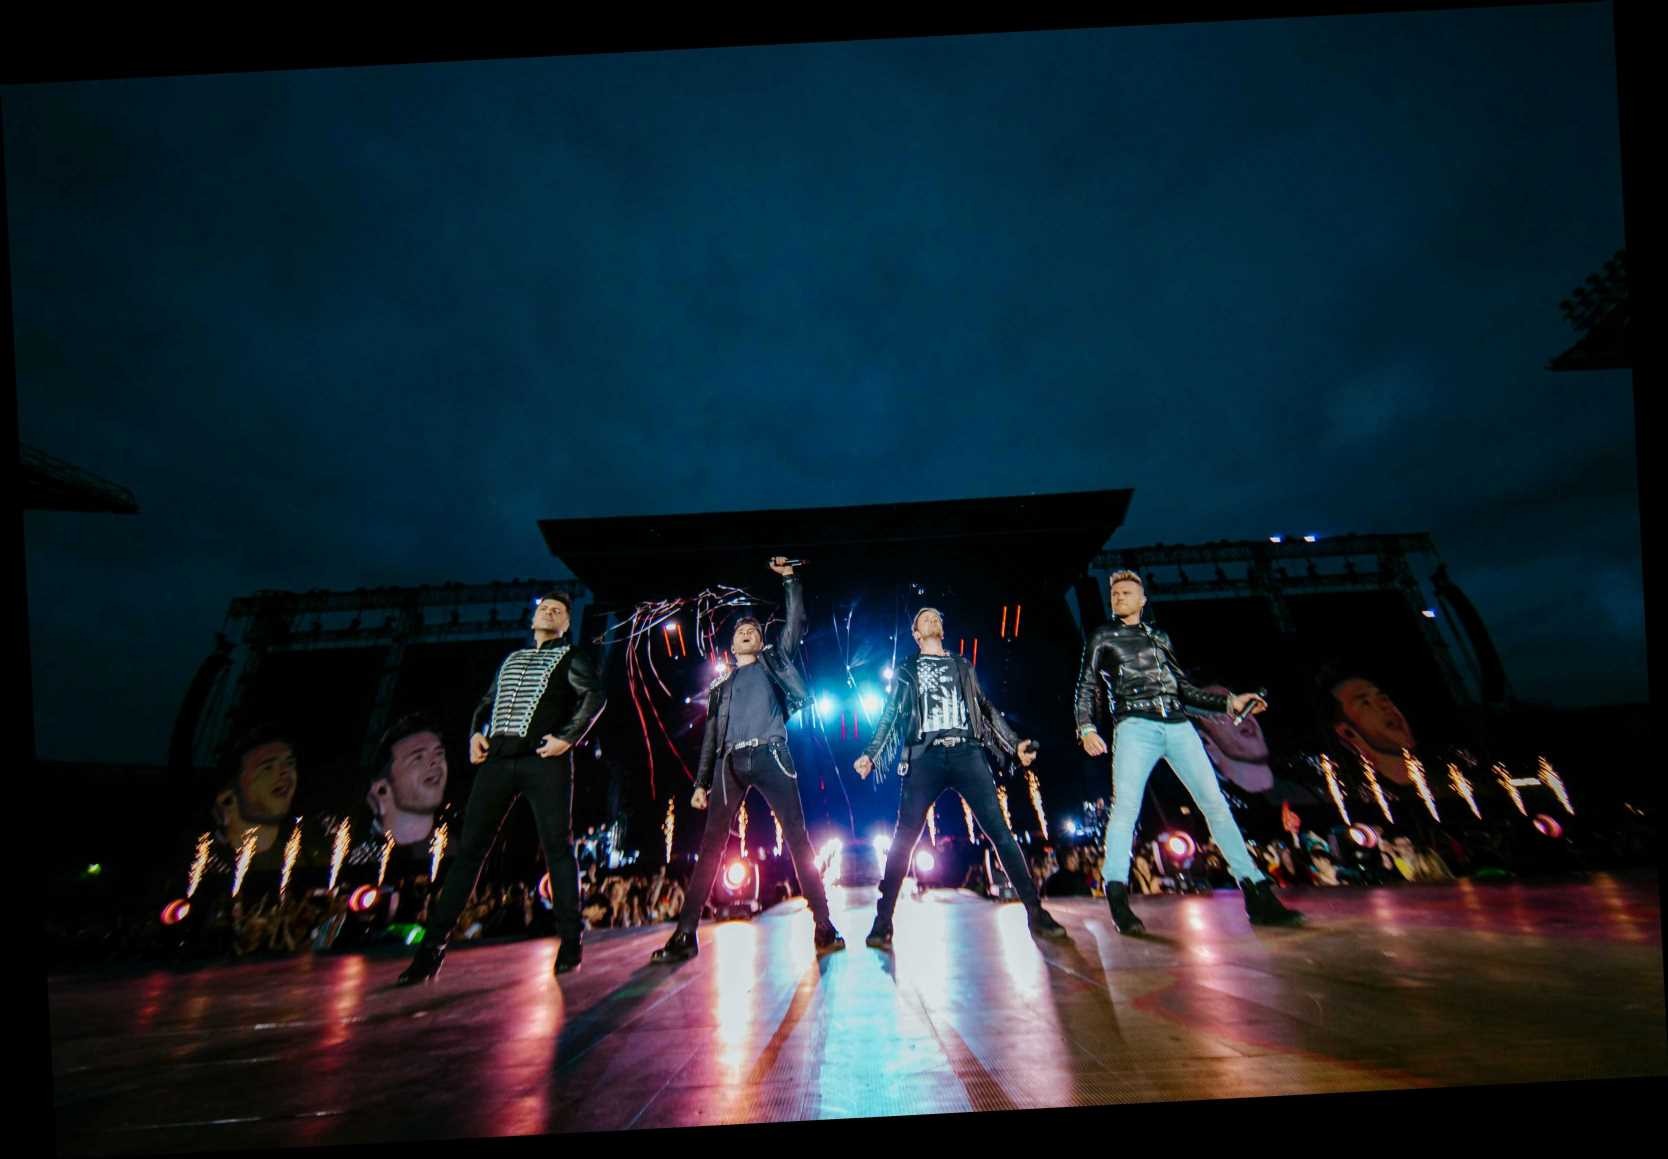 Westlife hail homecoming gig 'best concert of our lives' as they prepare to send fans wild with new DVD release – The Sun